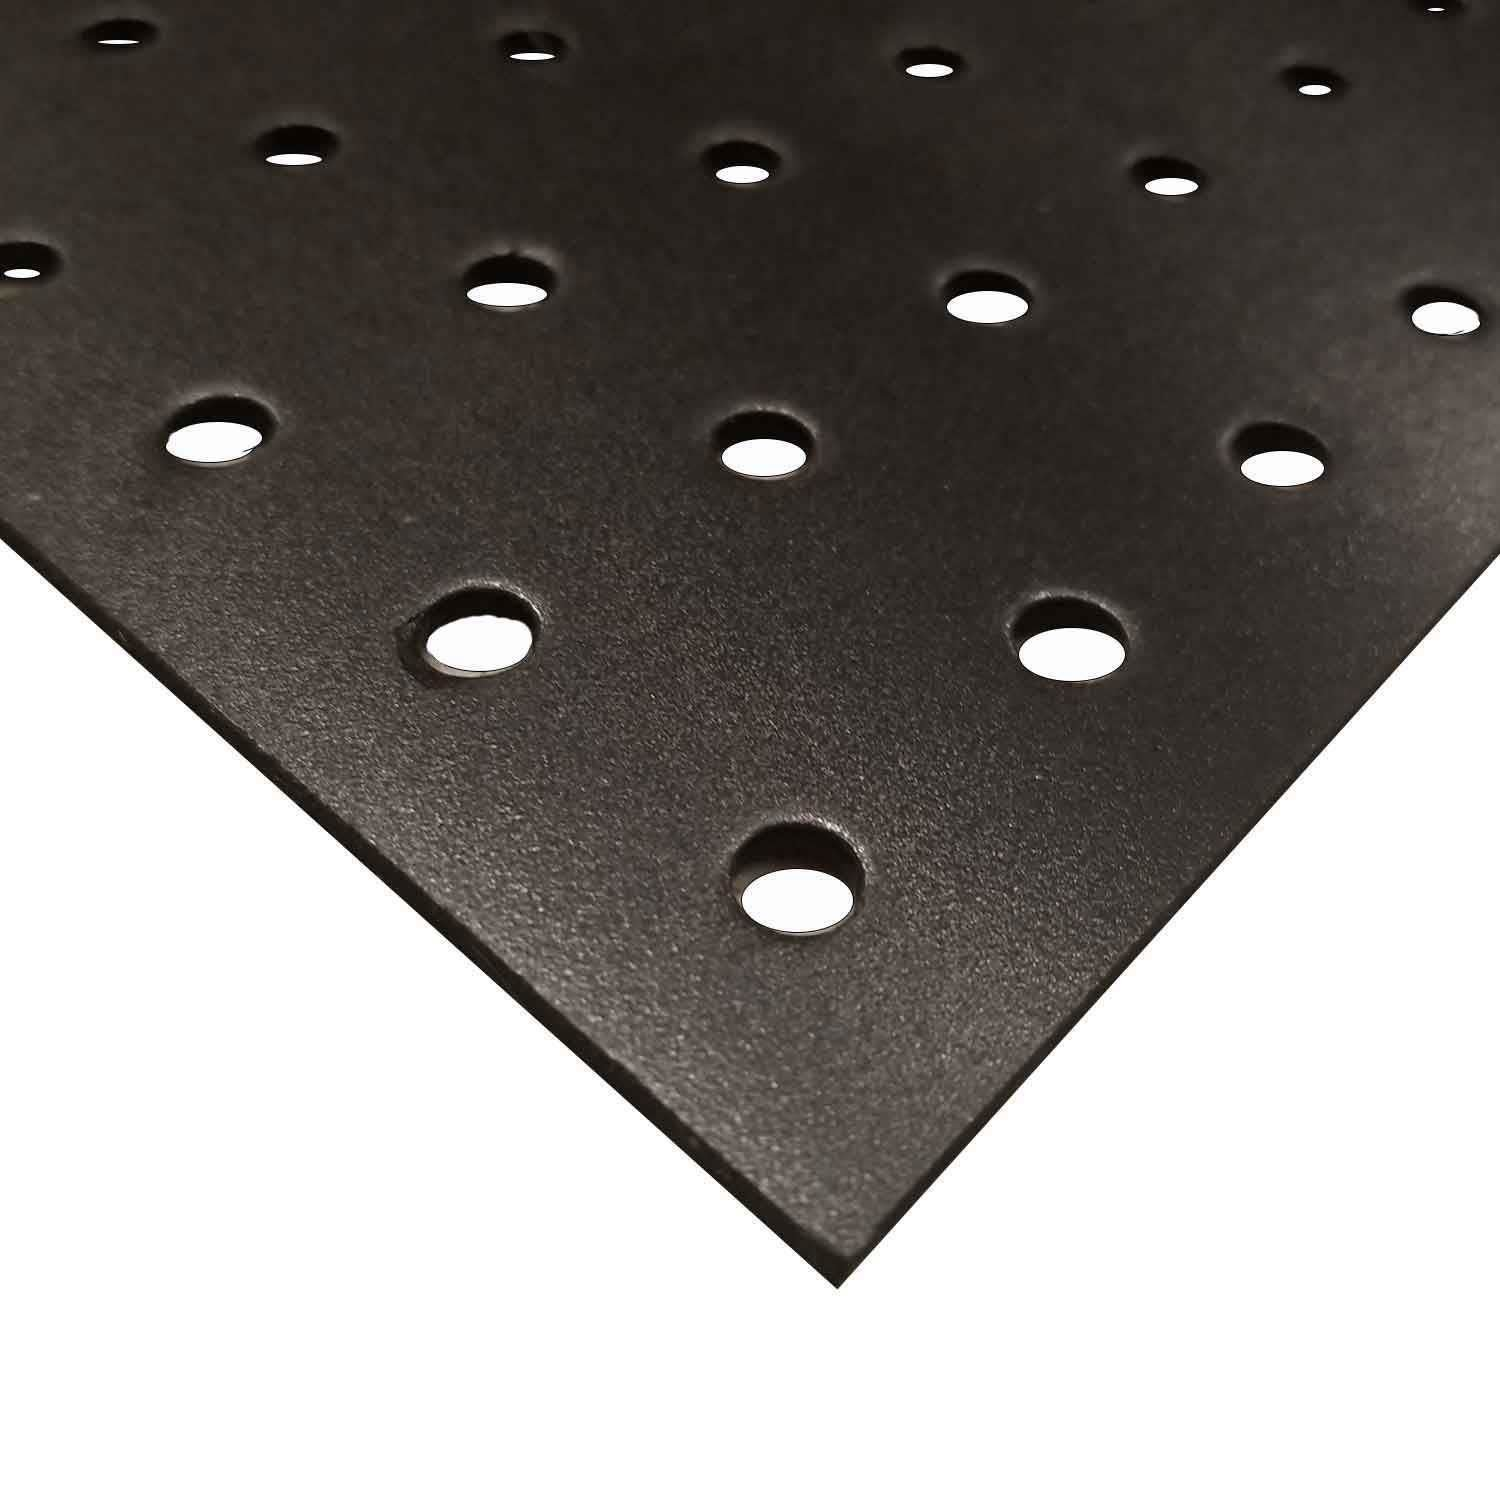 Online Plastic Supply Black Perforated PVC Expanded Sheet 1/8' (3mm) x 24' x 48' (1/4' Holes) (3 Pack)